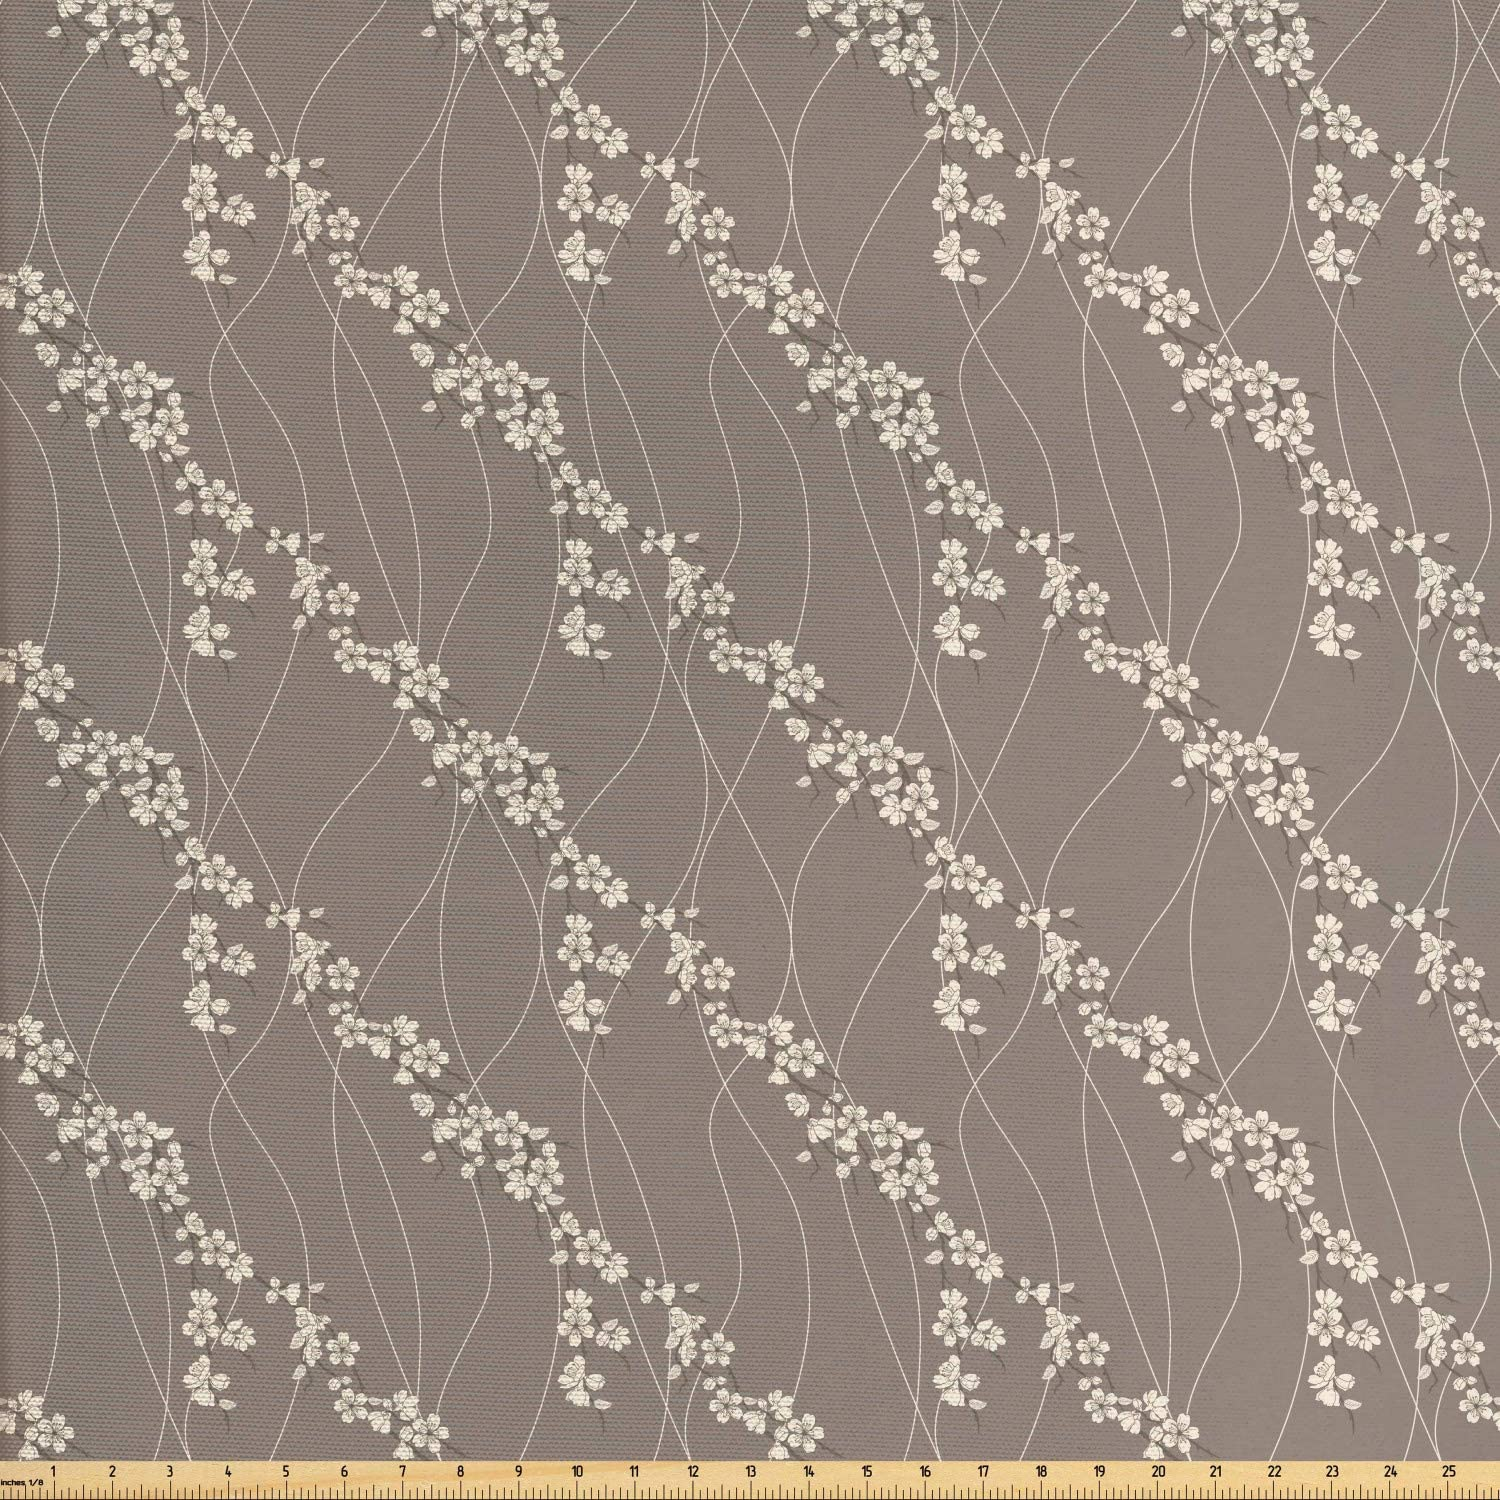 Lunarable Japanese Fabric by The Yard, Abstract Sakura Flowers on Branches Wavy Vertical Lines Pattern, Decorative Fabric for Upholstery and Home Accents, 3 Yards, Cream